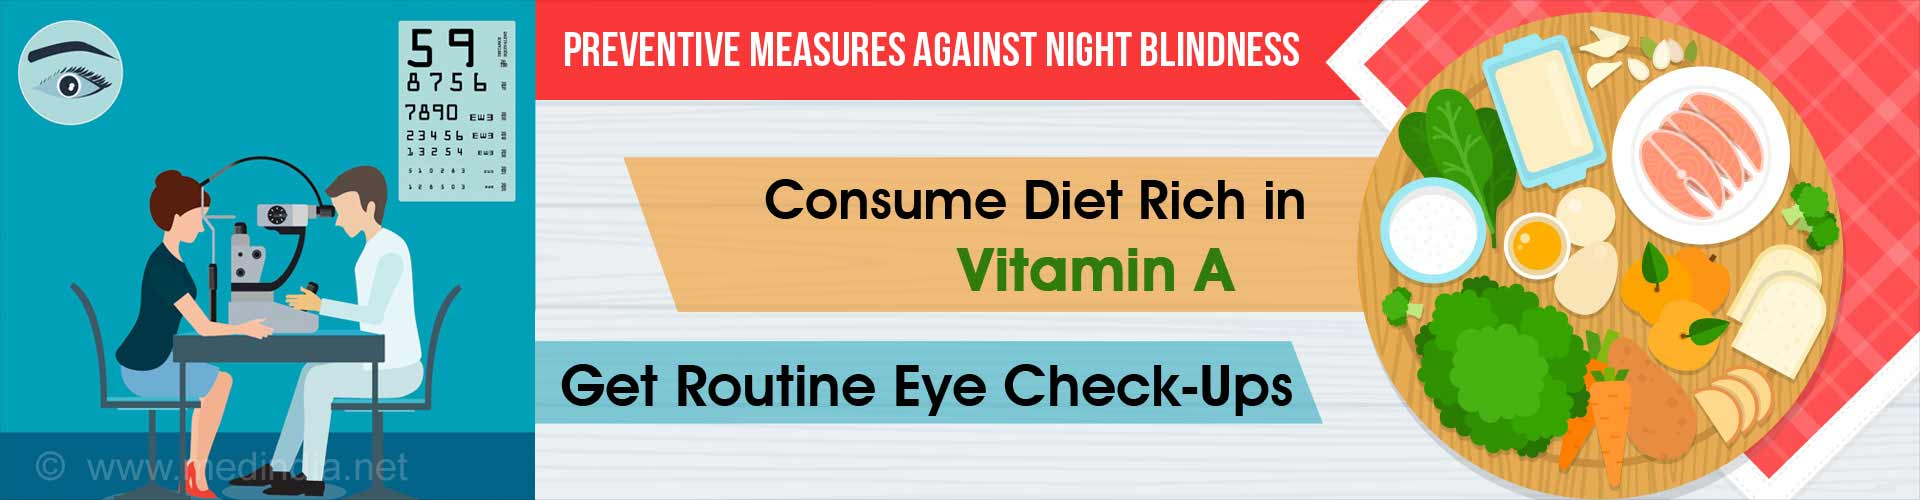 Preventive measure against night blindness - consume diet rich n vitamin A - get routine eye check-ups